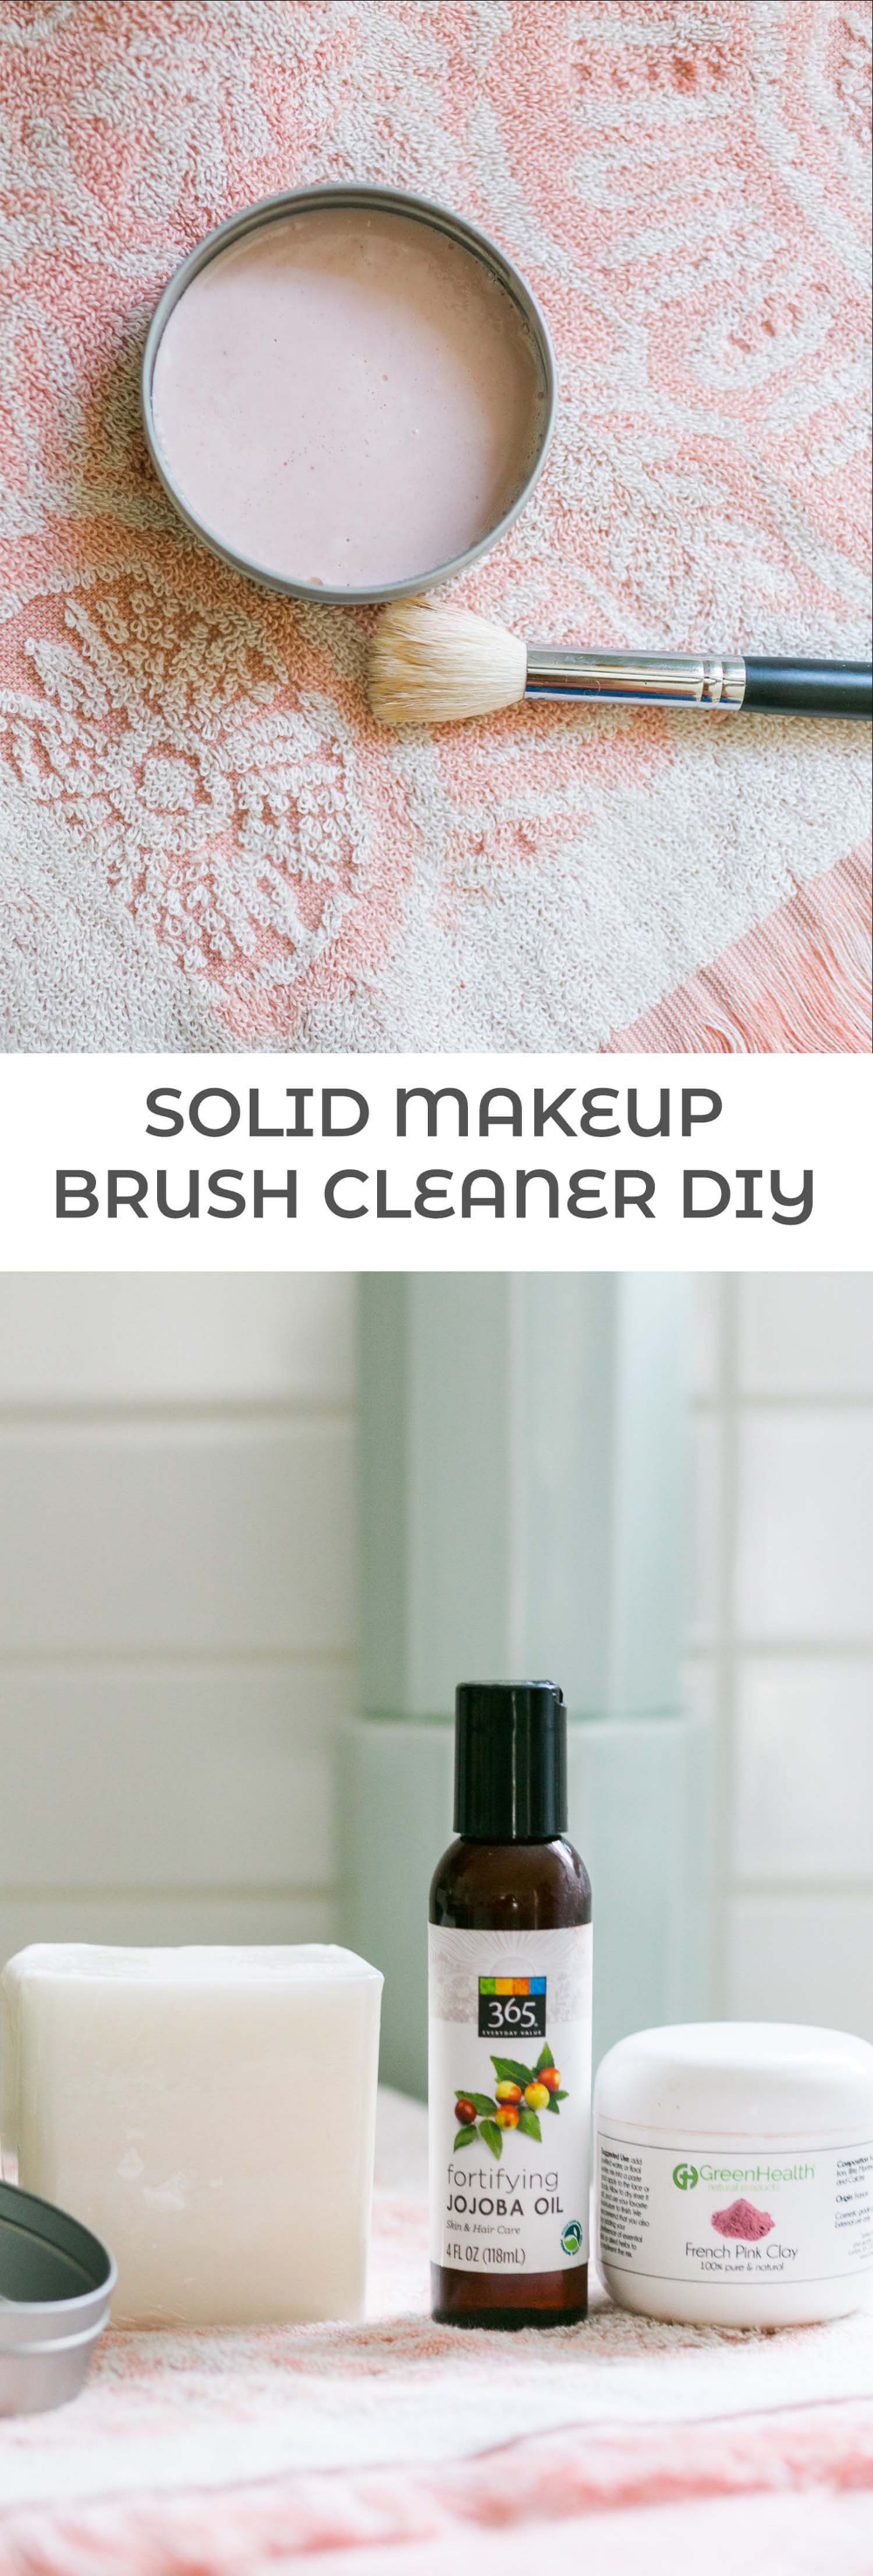 Solid Cleaner for Makeup Brushes and Blenders Brush